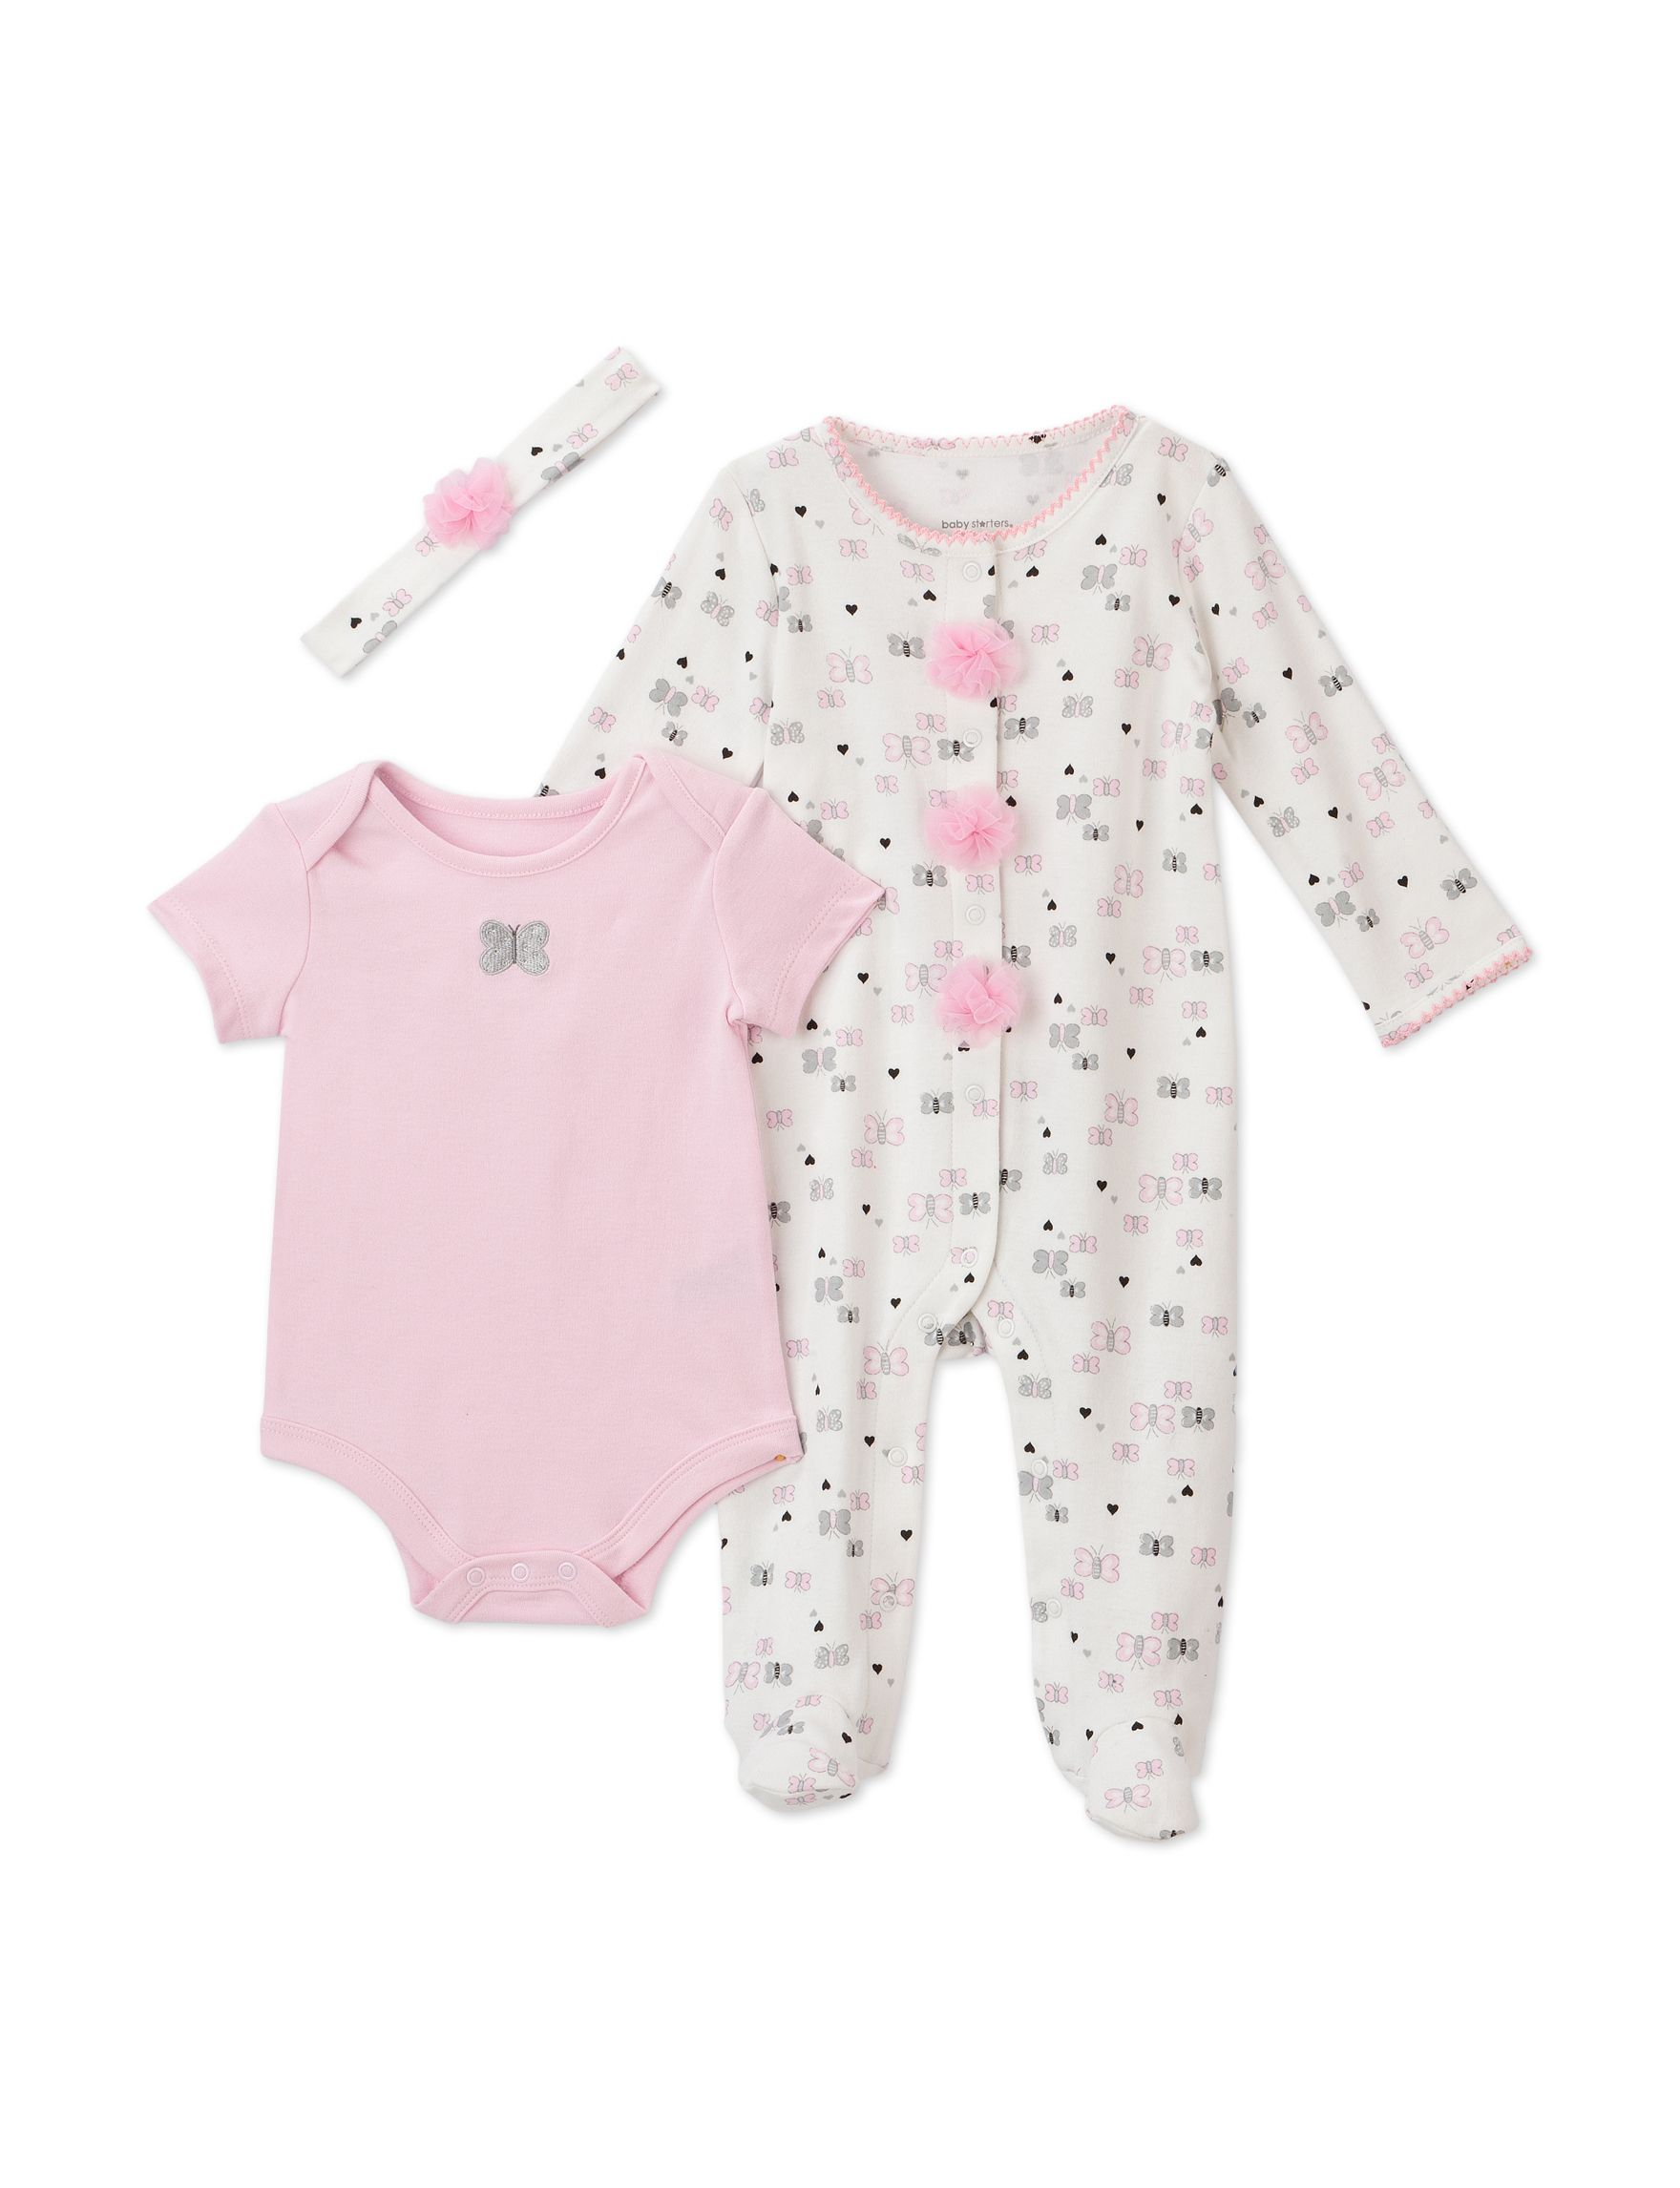 Baby Starters 3 pc Pink & Grey Butterfly Bodysuit Set – Baby 3 9